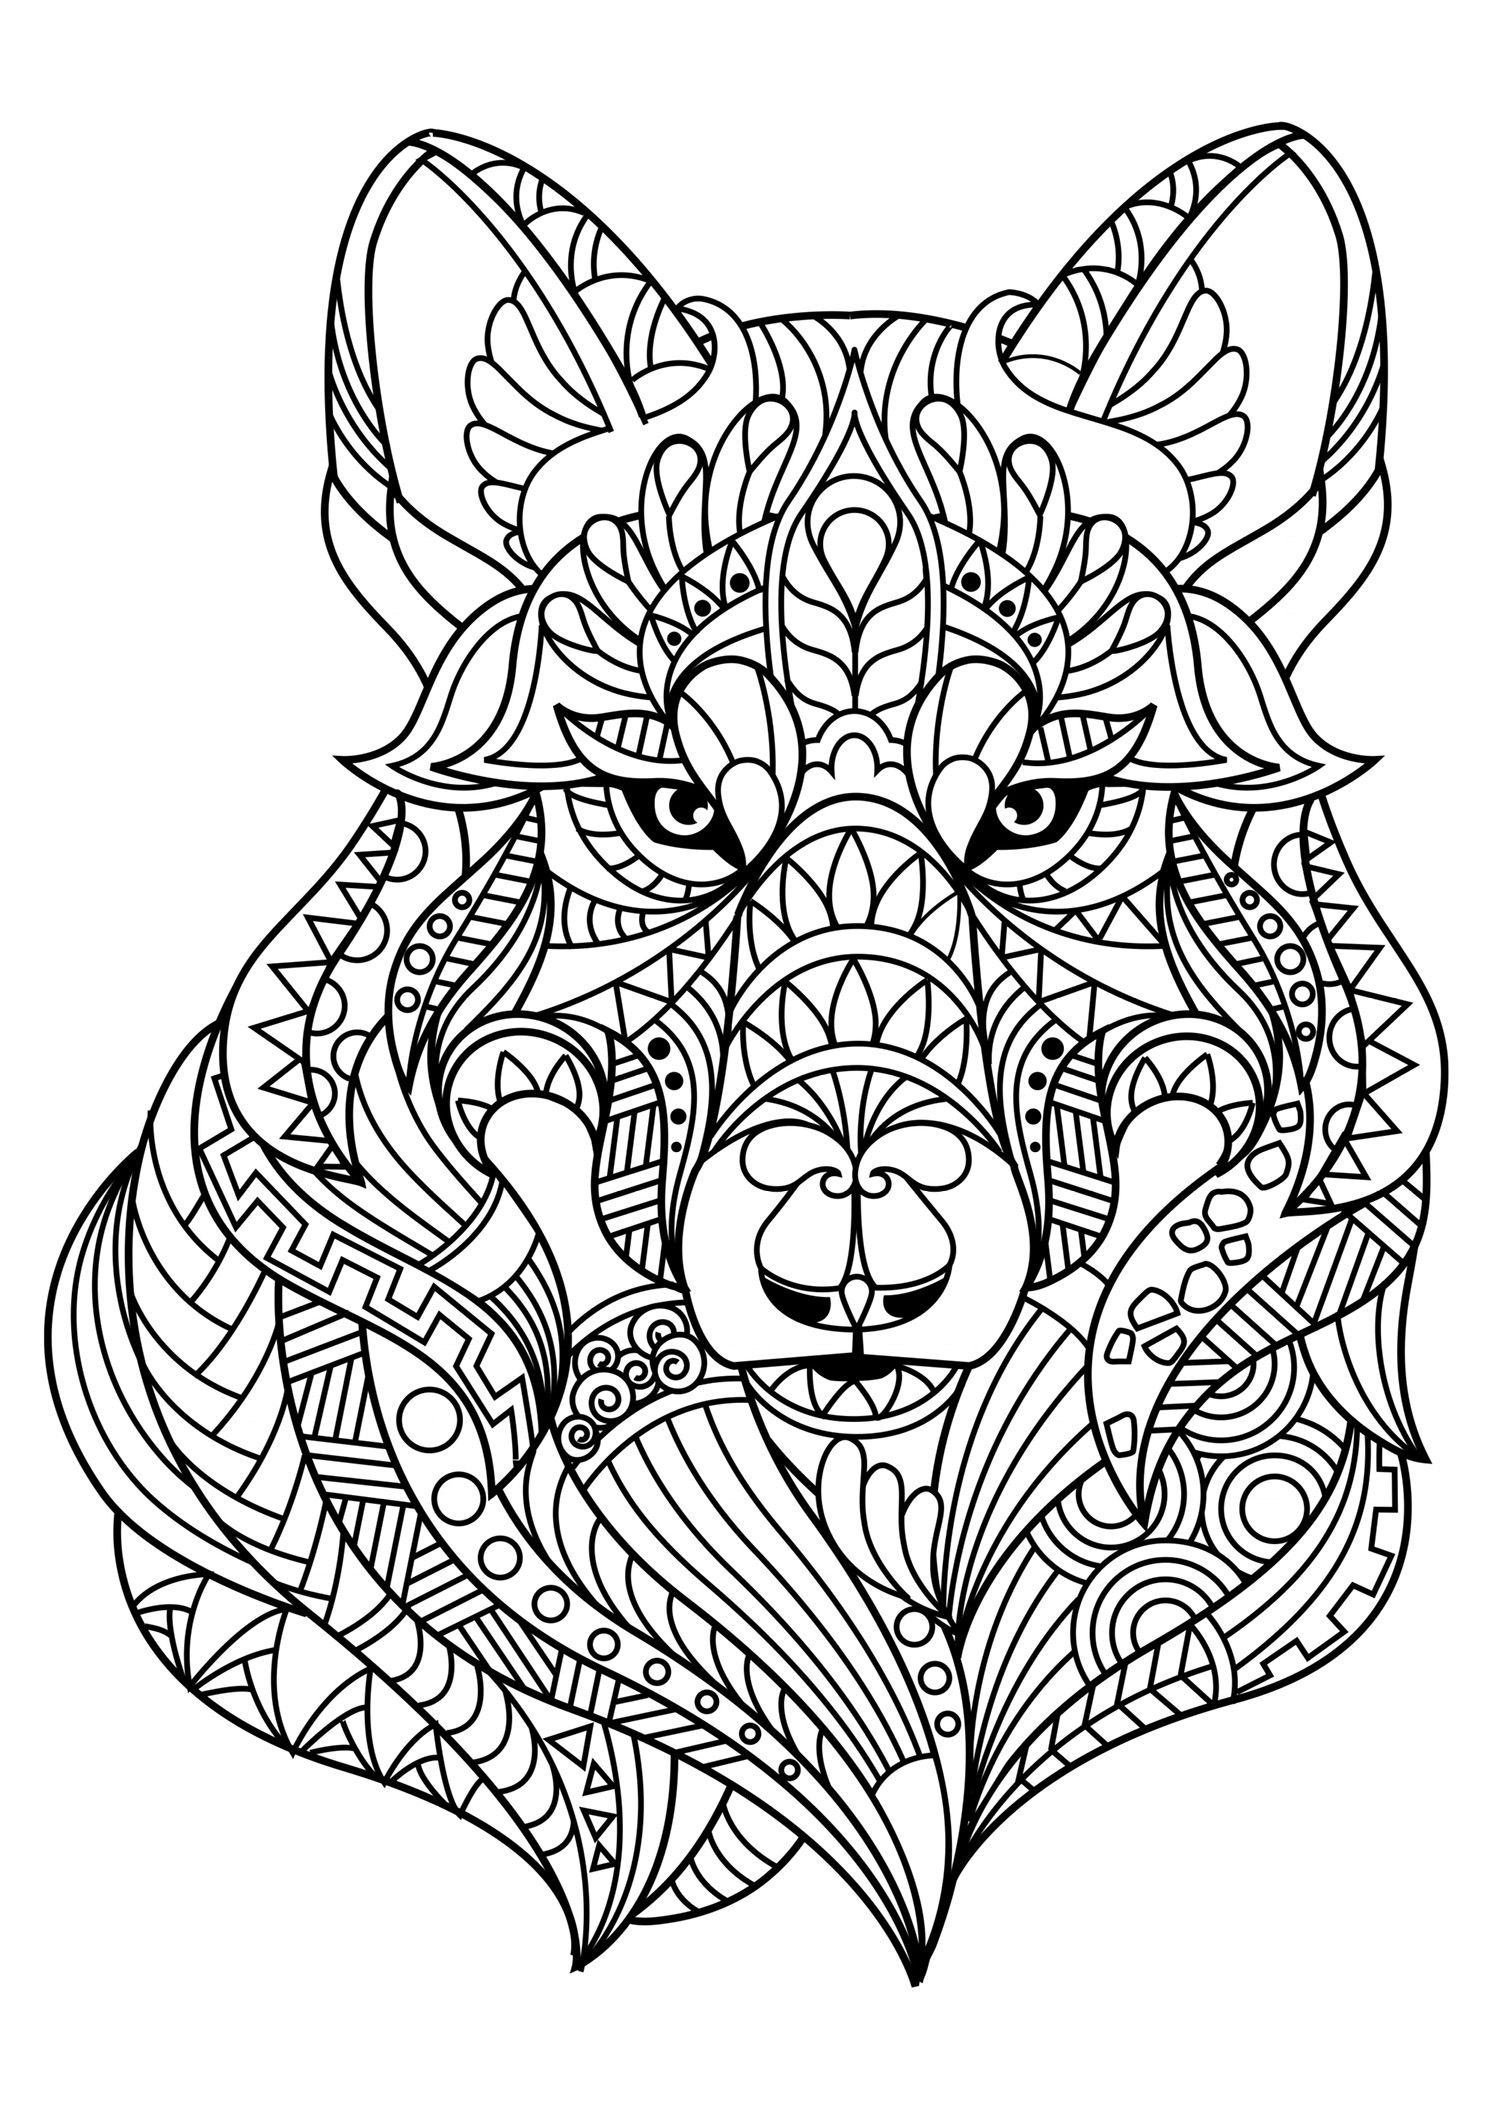 Pin By Brandi Sclafani On Coloring Pages Pinterest Coloring